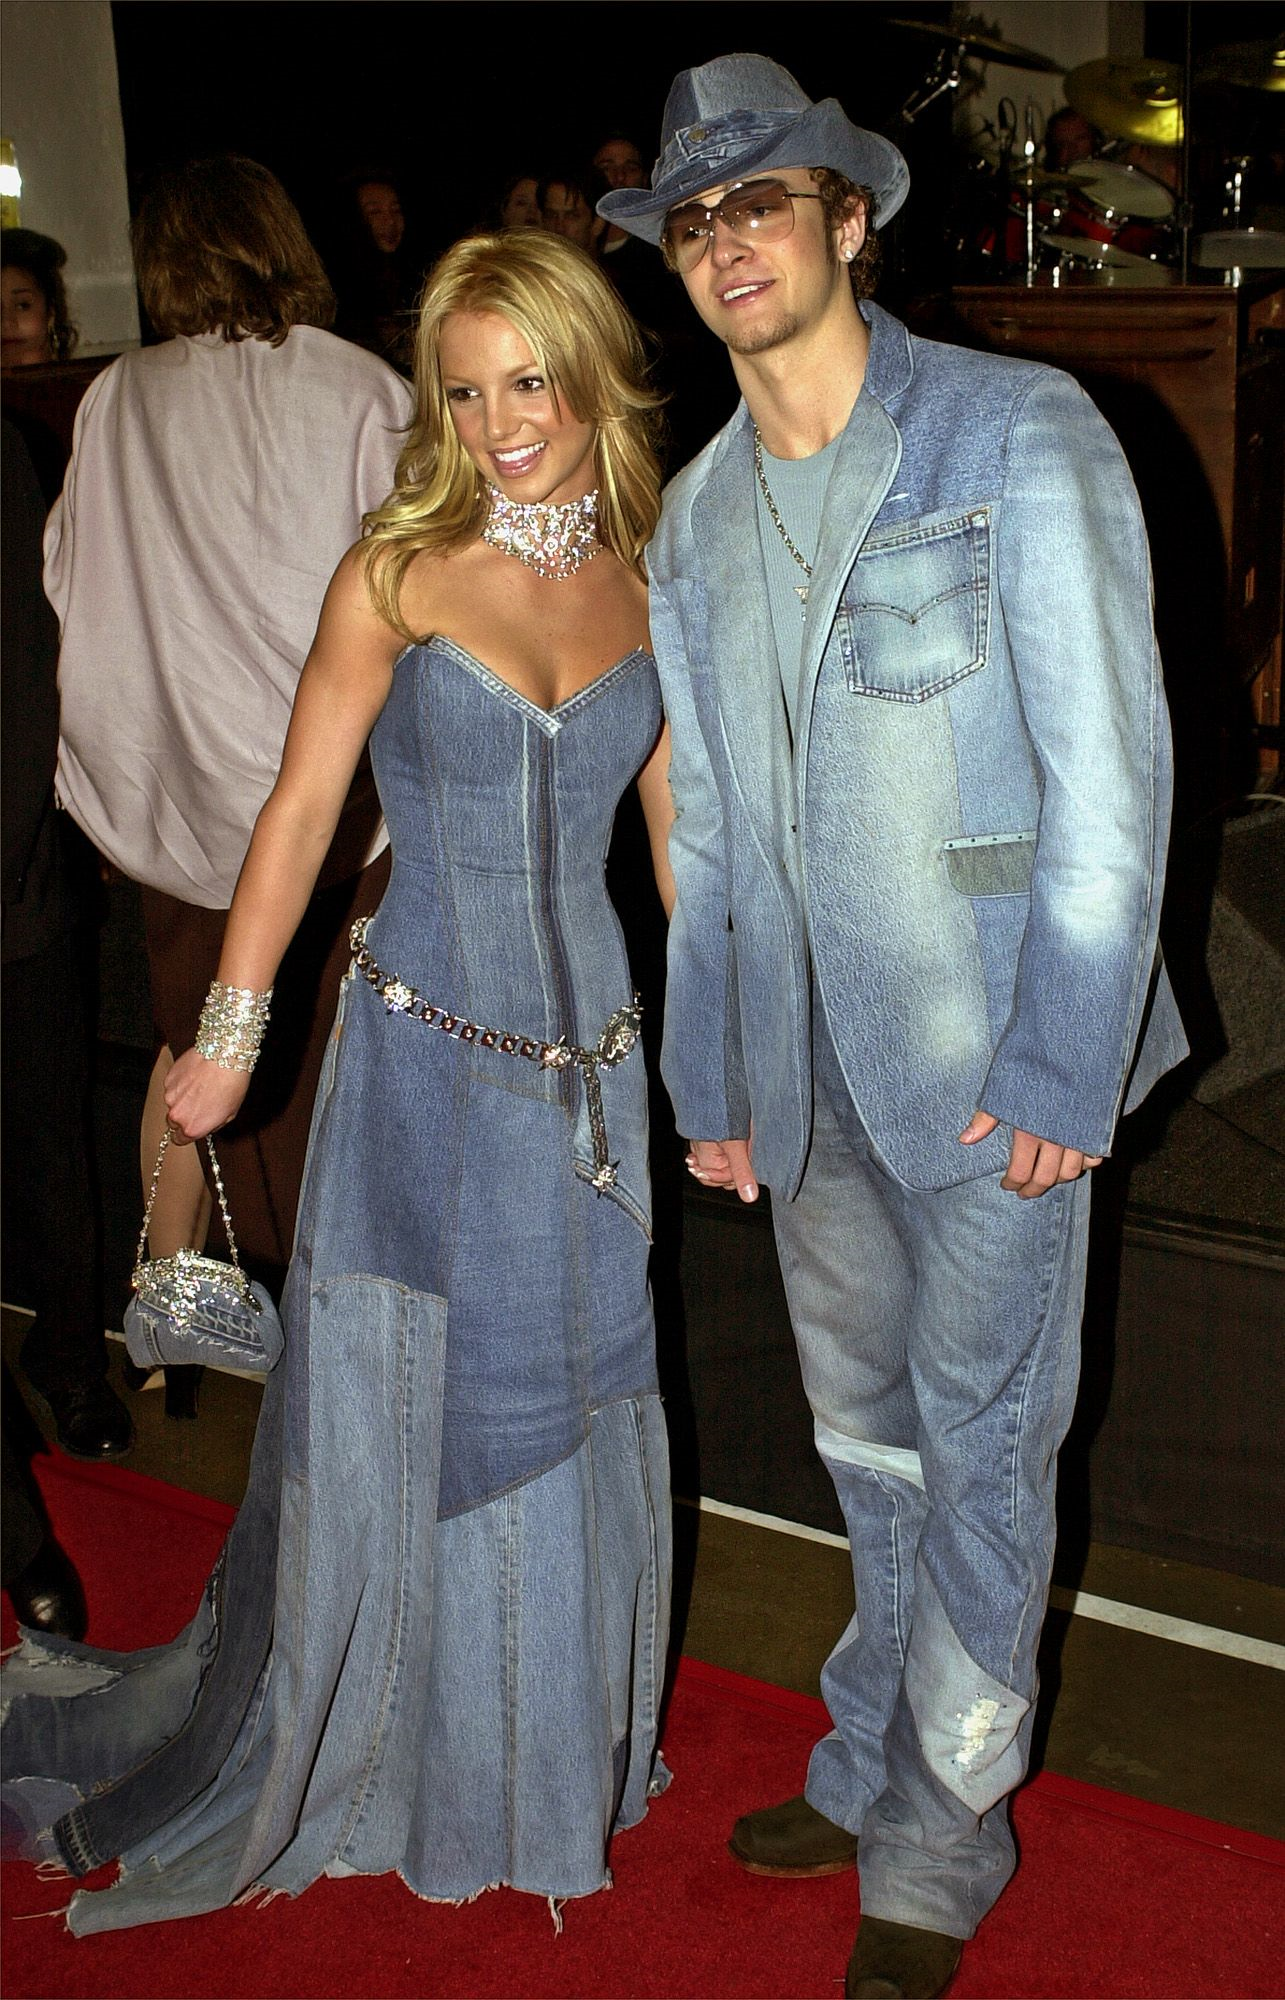 JT and Britney